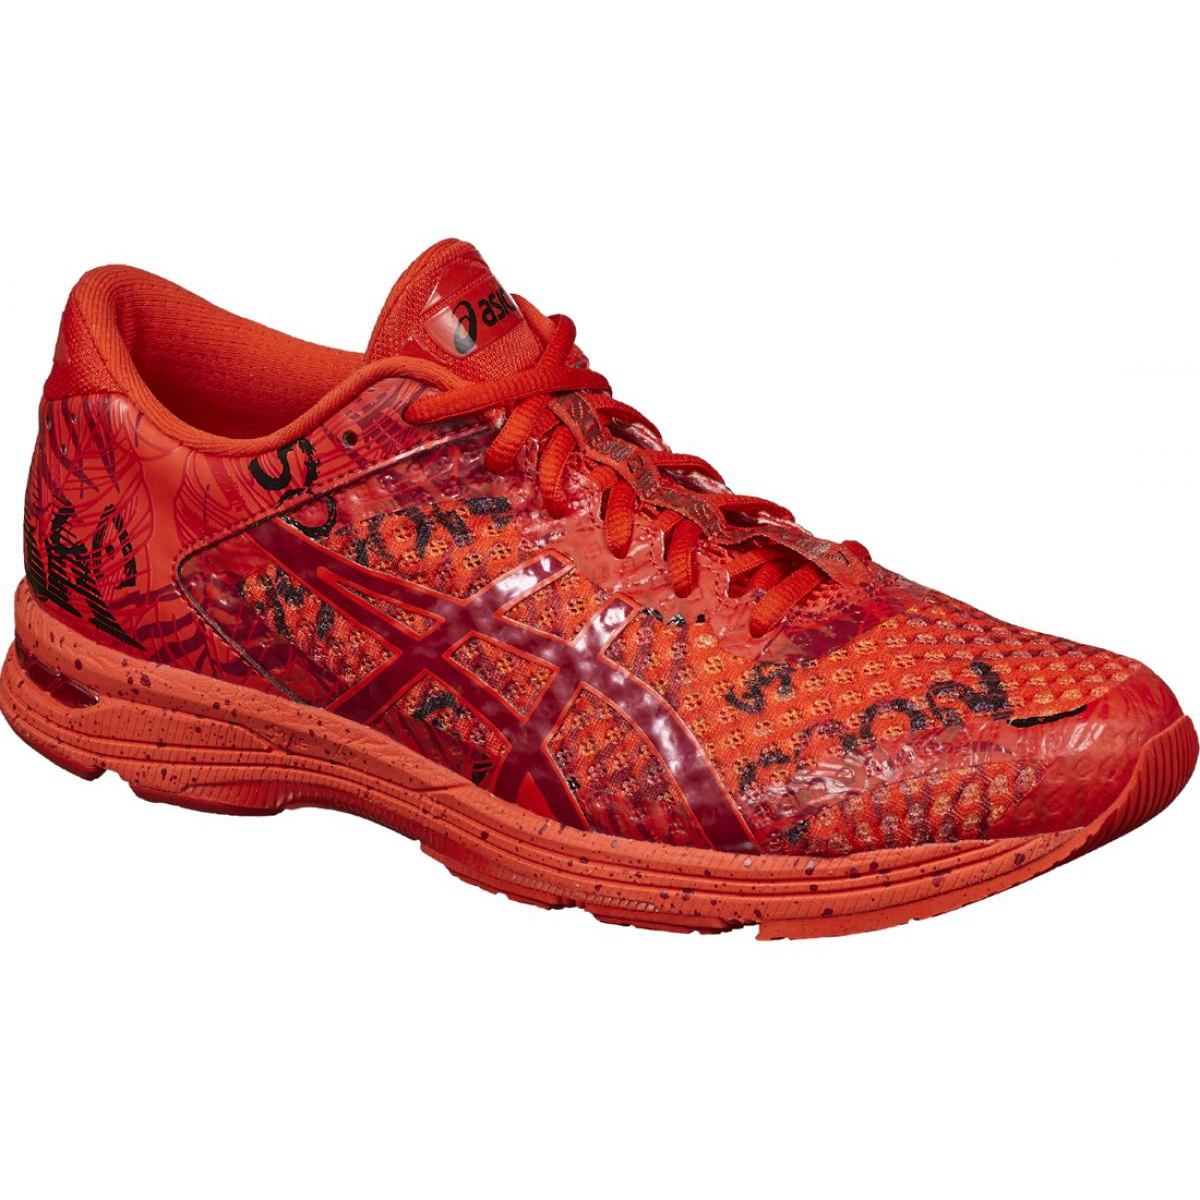 Details about Asics Gel Noosa Tri 11 M 1011A631 600 running shoes red